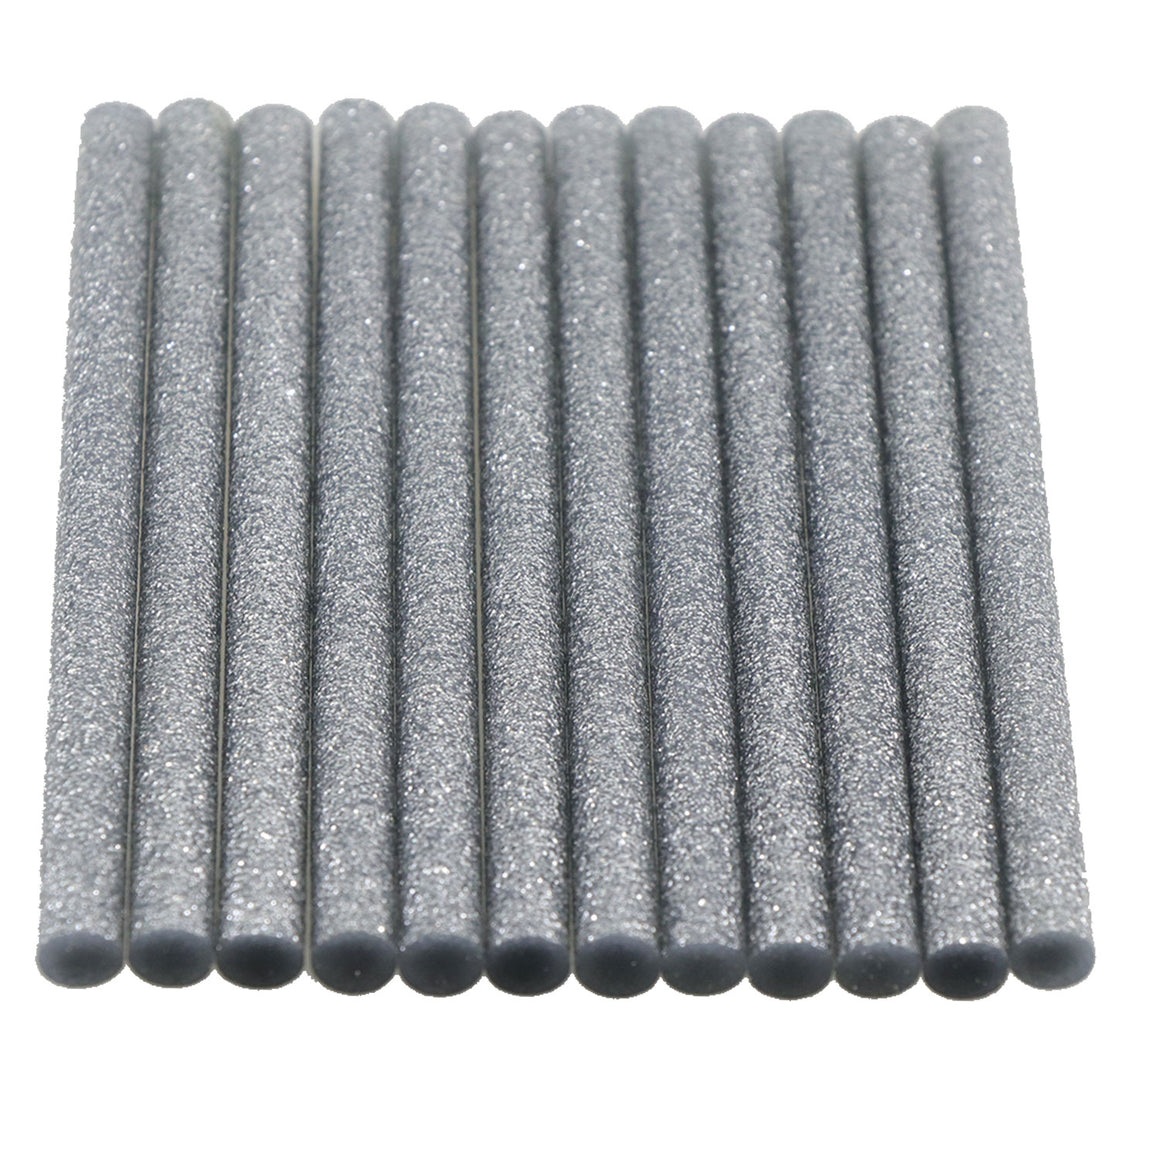 Silver Glitter Hot Glue Sticks Mini Size